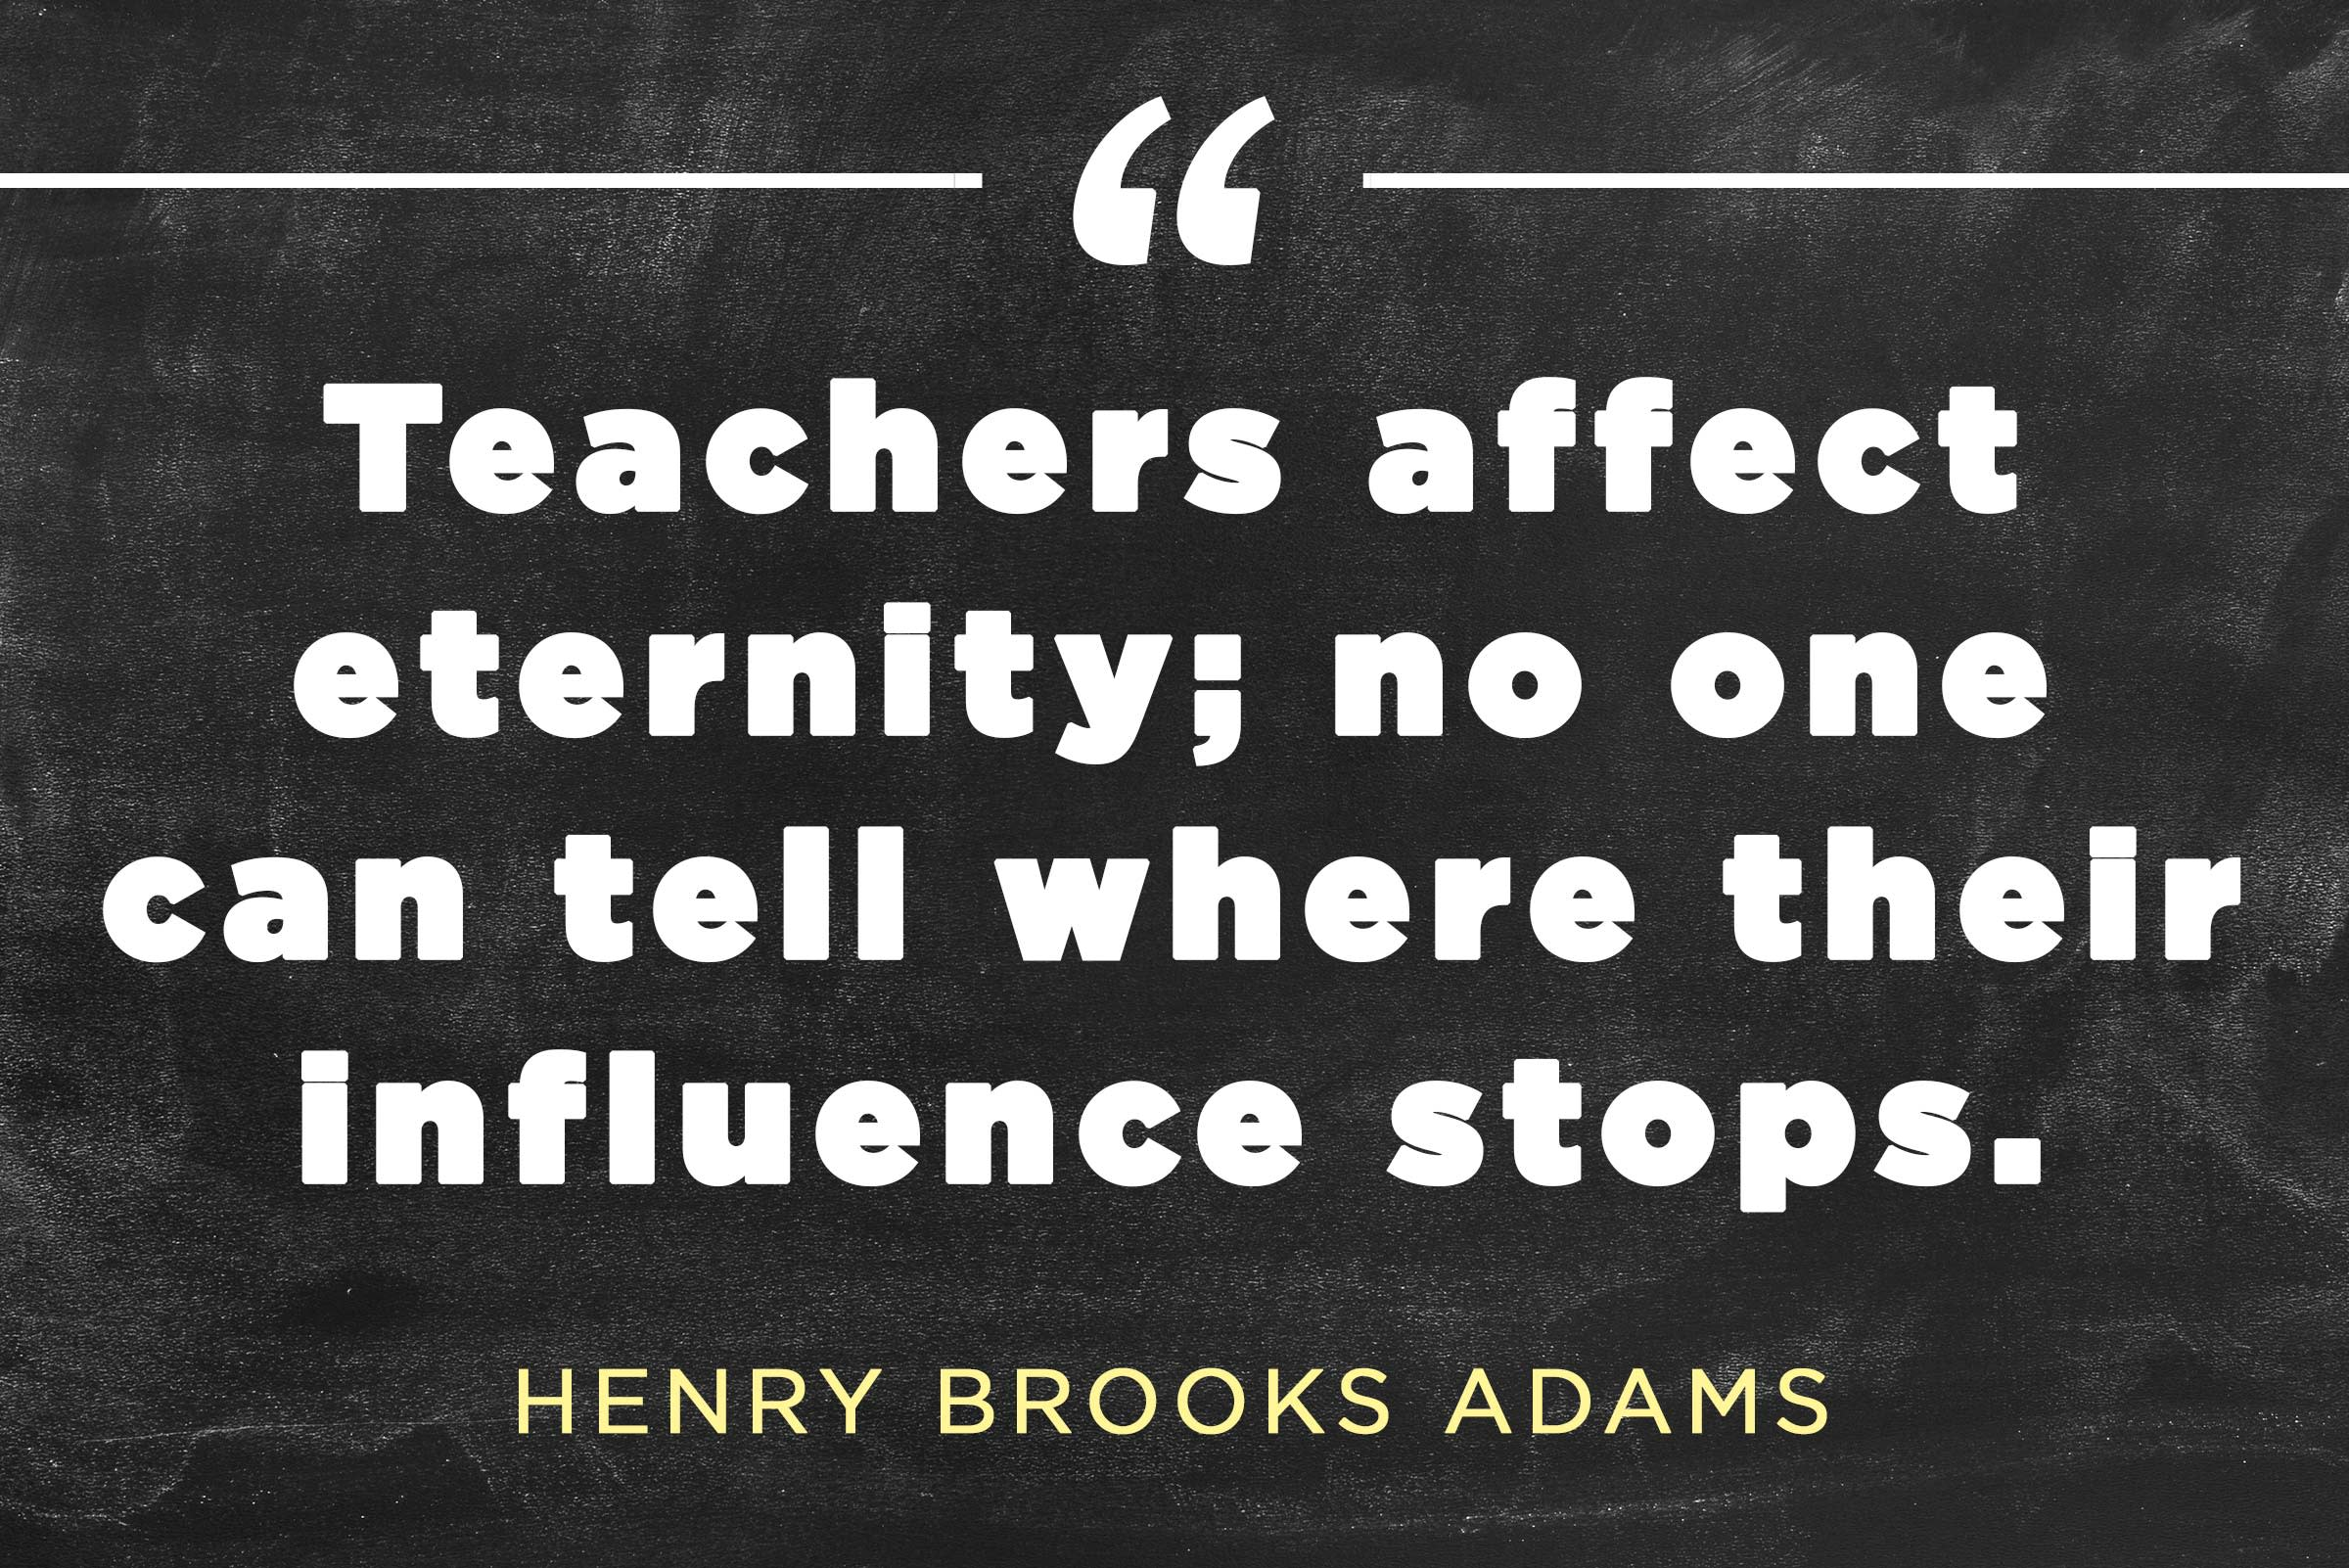 Readers Digest image Henry Brooks Adams quote about teachers